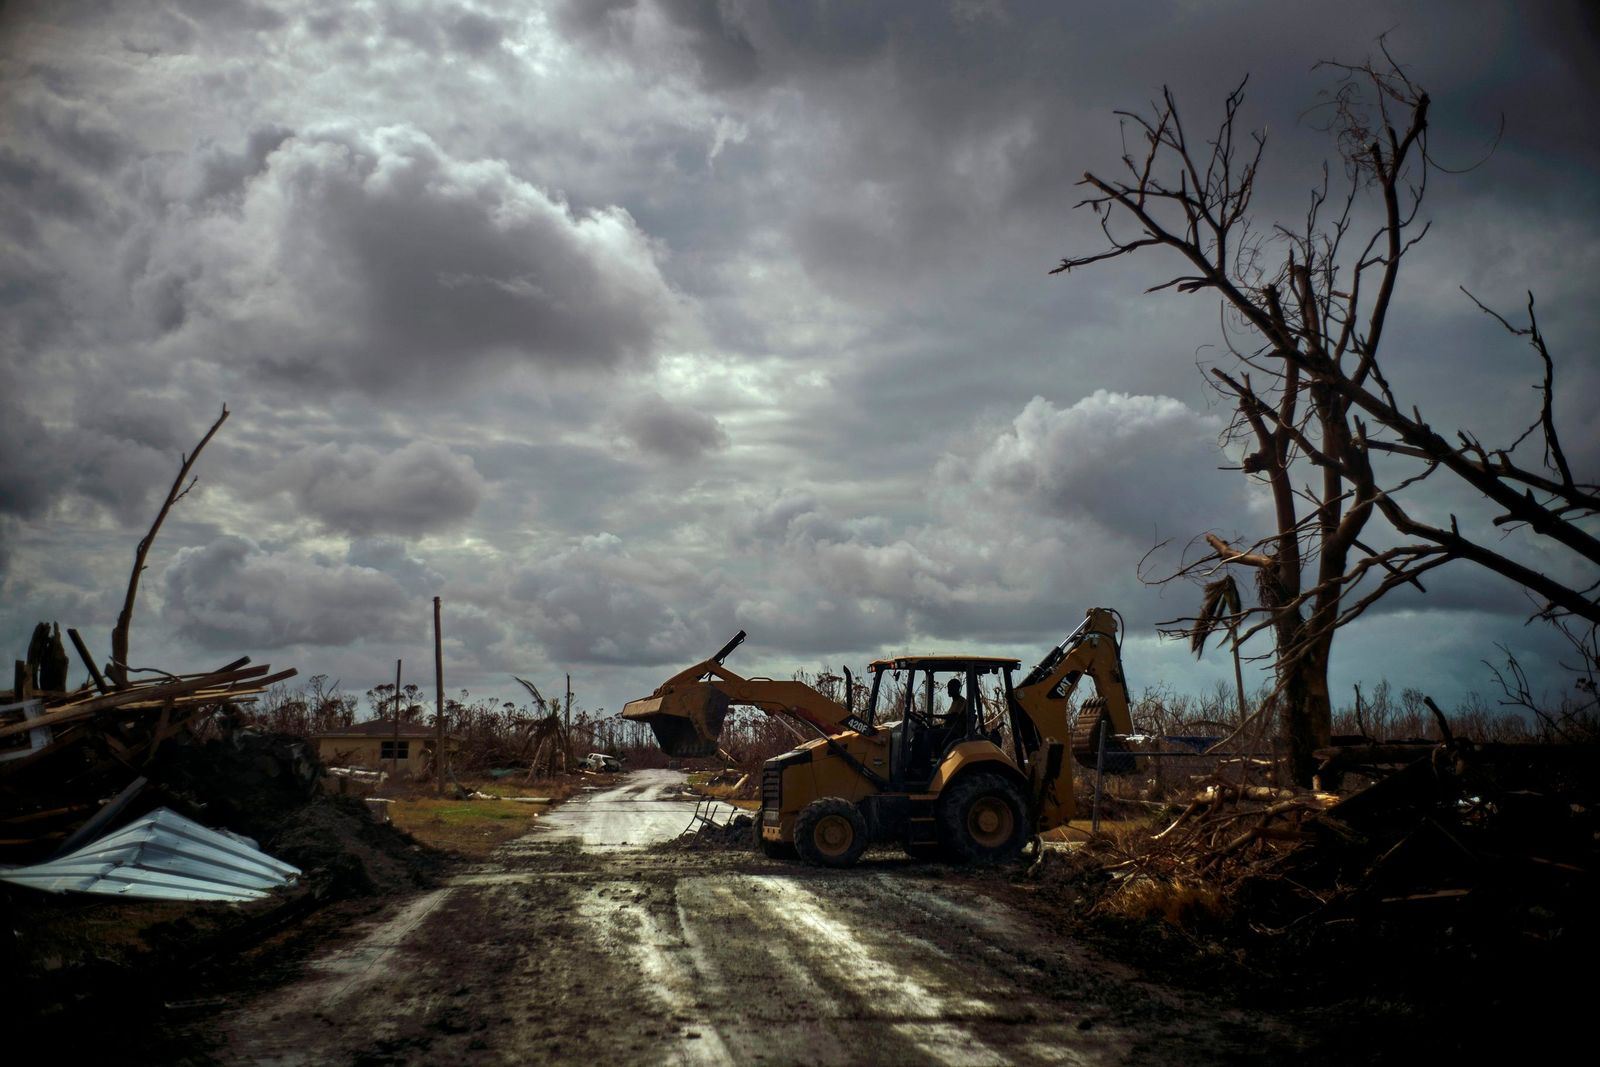 Mos Antenor, 42, drives a bulldozer while clearing the road after Hurricane Dorian Mclean's Town, Grand Bahama, Bahamas, Friday Sept. 13, 2019. (AP Photo/Ramon Espinosa)